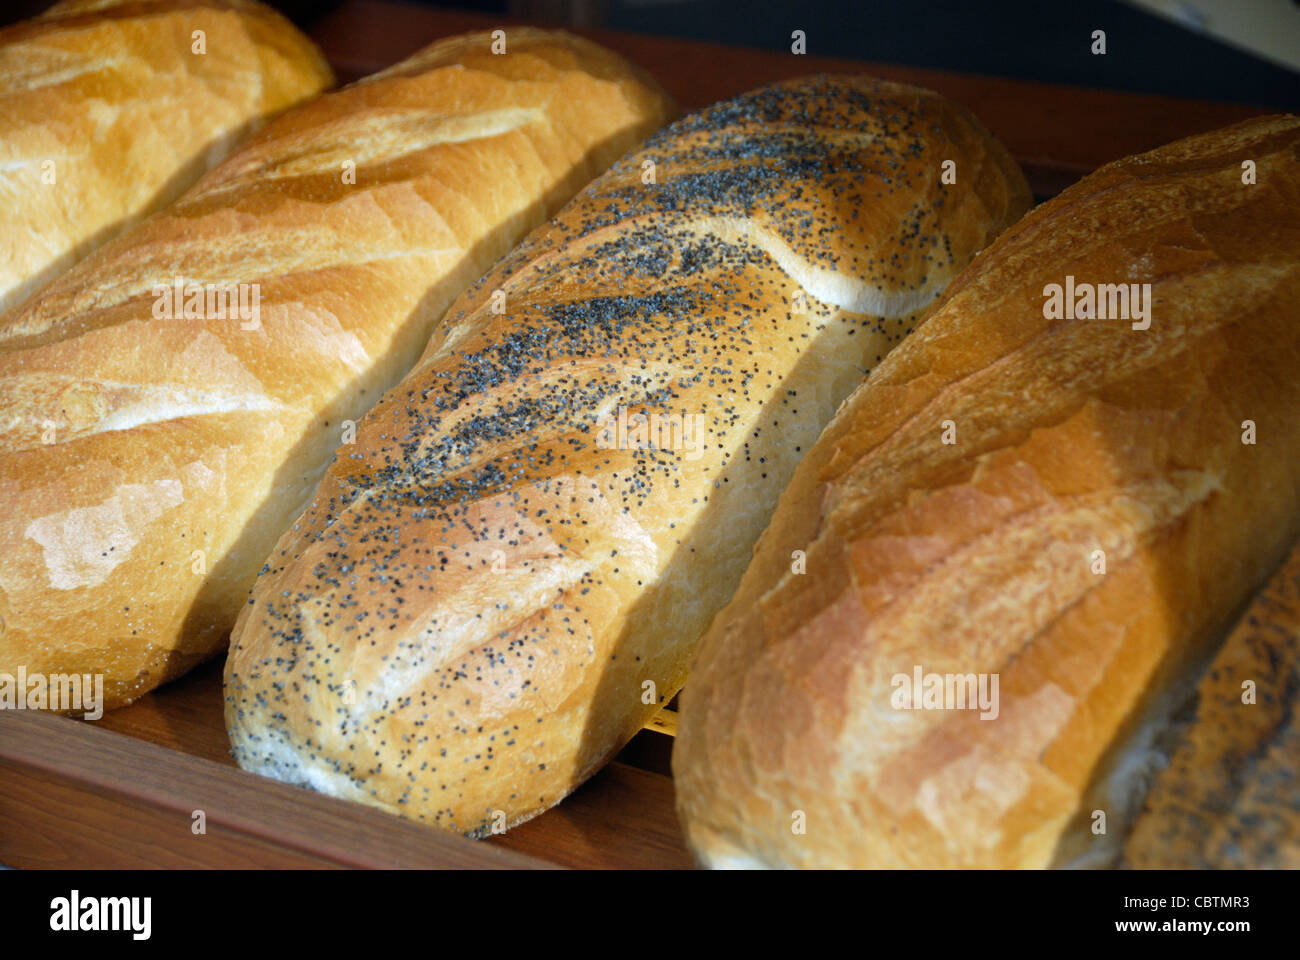 Bloomer loaves in a bakery shop window - Stock Image